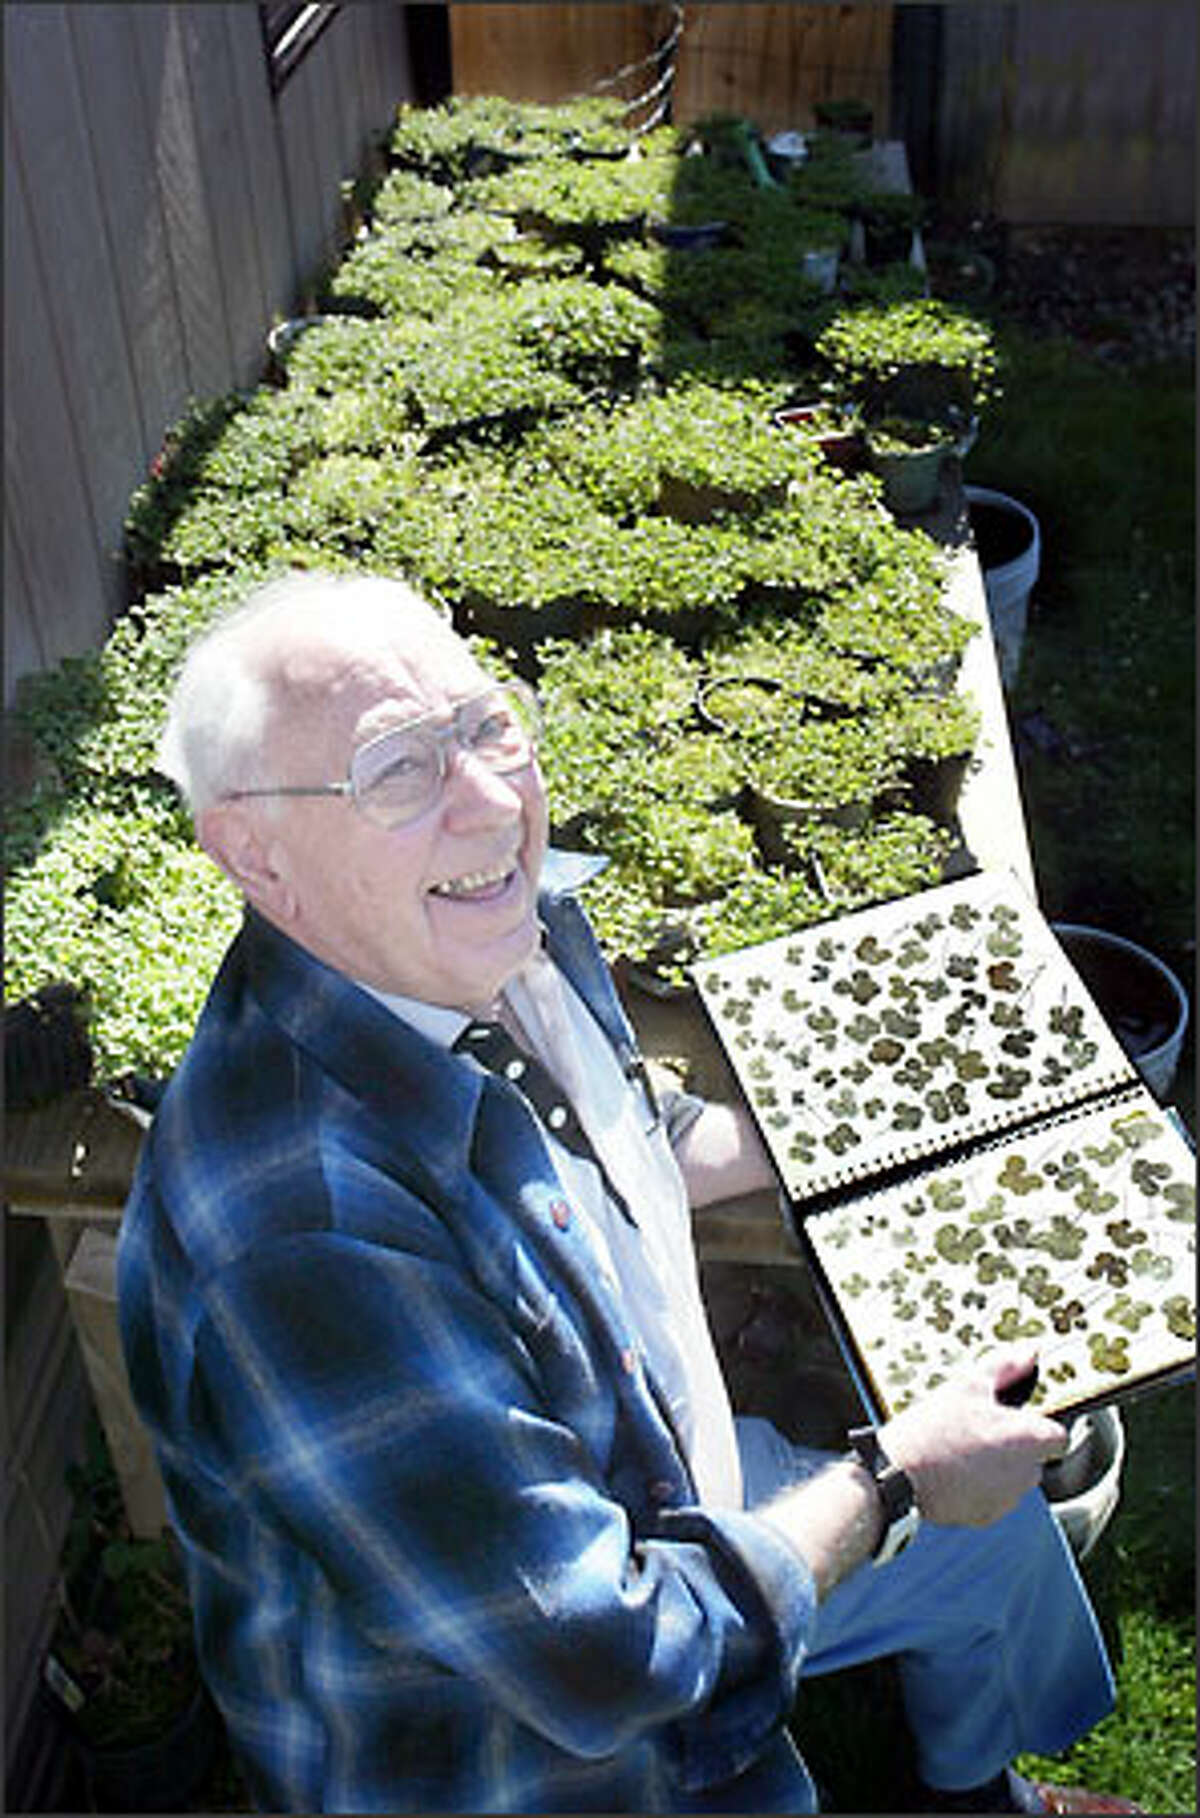 """Zumbuhl displays some of his favorite clovers, but he doesn't over-romanticize them: """"Clovers will grow anywhere. They're a weed."""""""